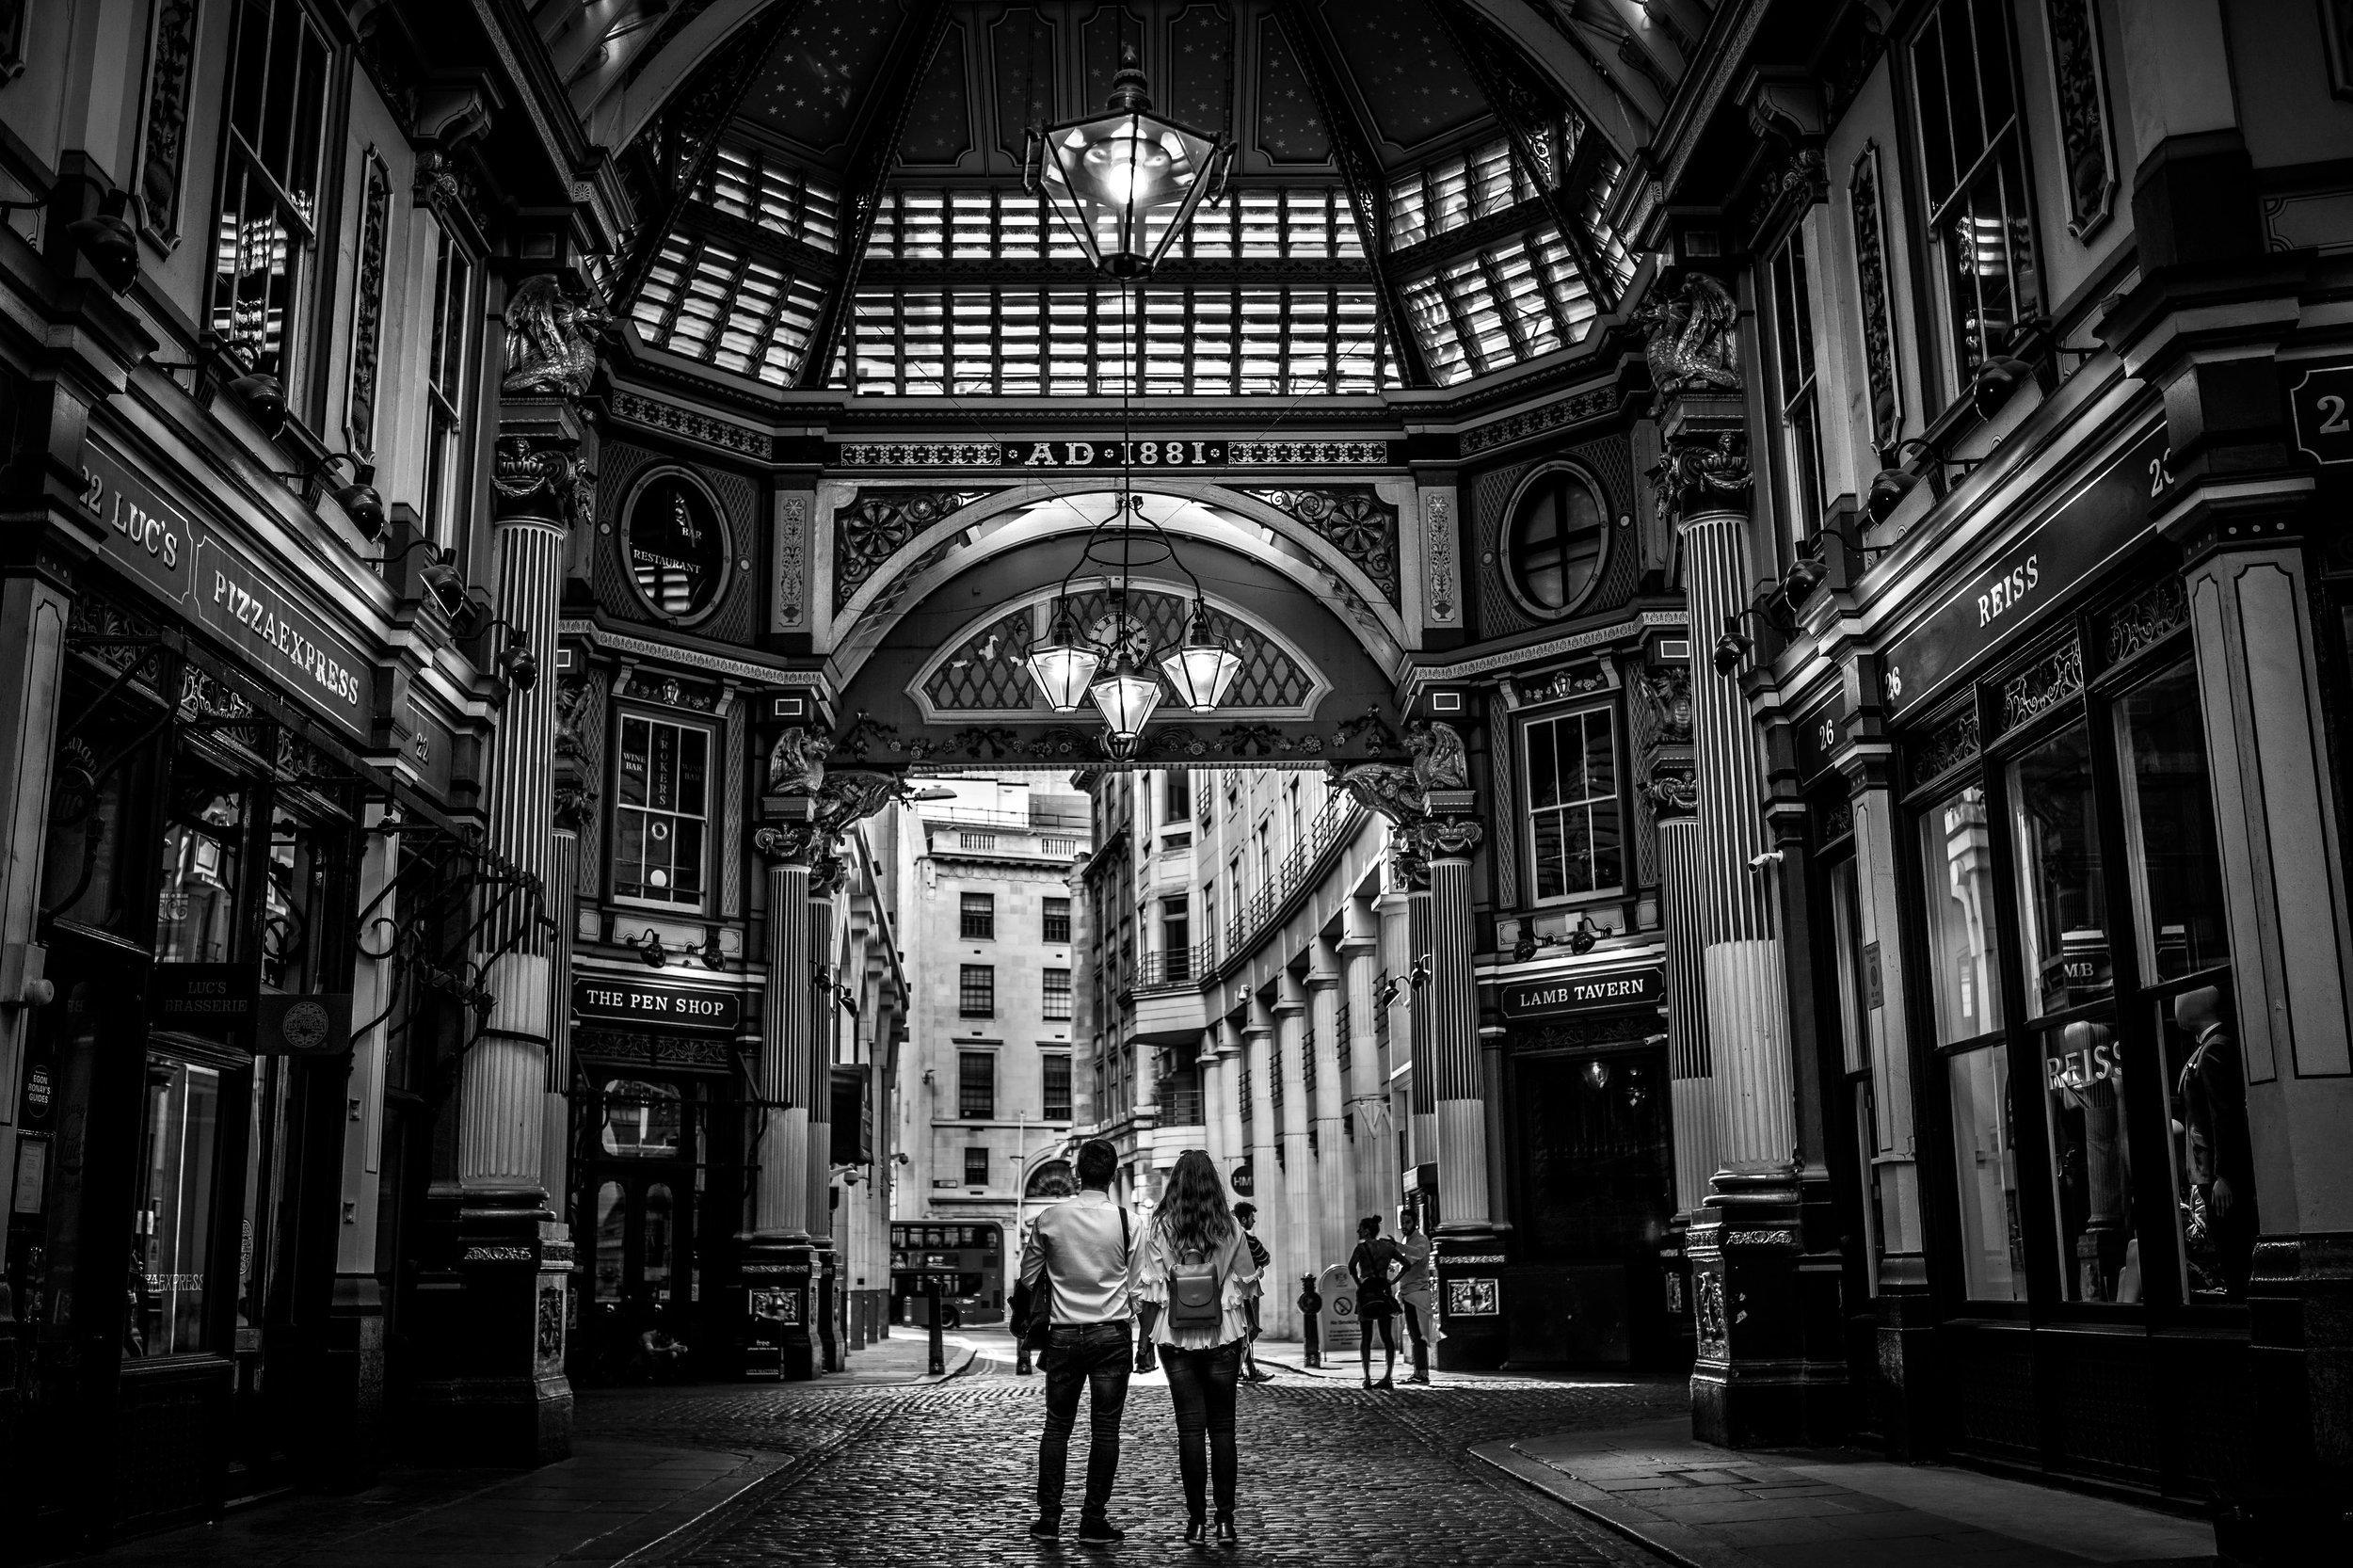 Destination_Wedding_London_Engagement_Session_Photographer-154.jpg